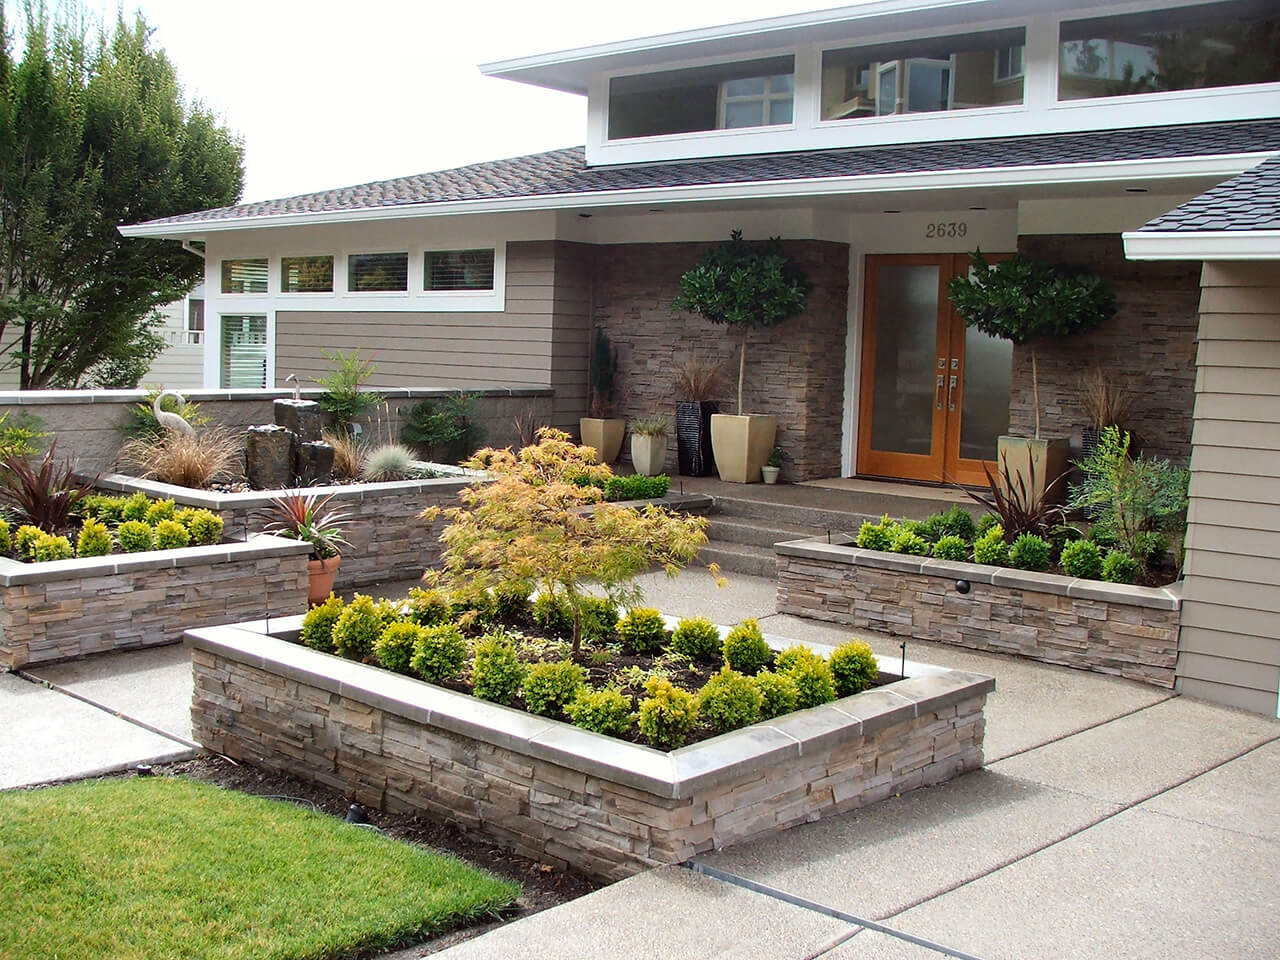 50 best front yard landscaping ideas and garden designs for Front yard landscaping ideas